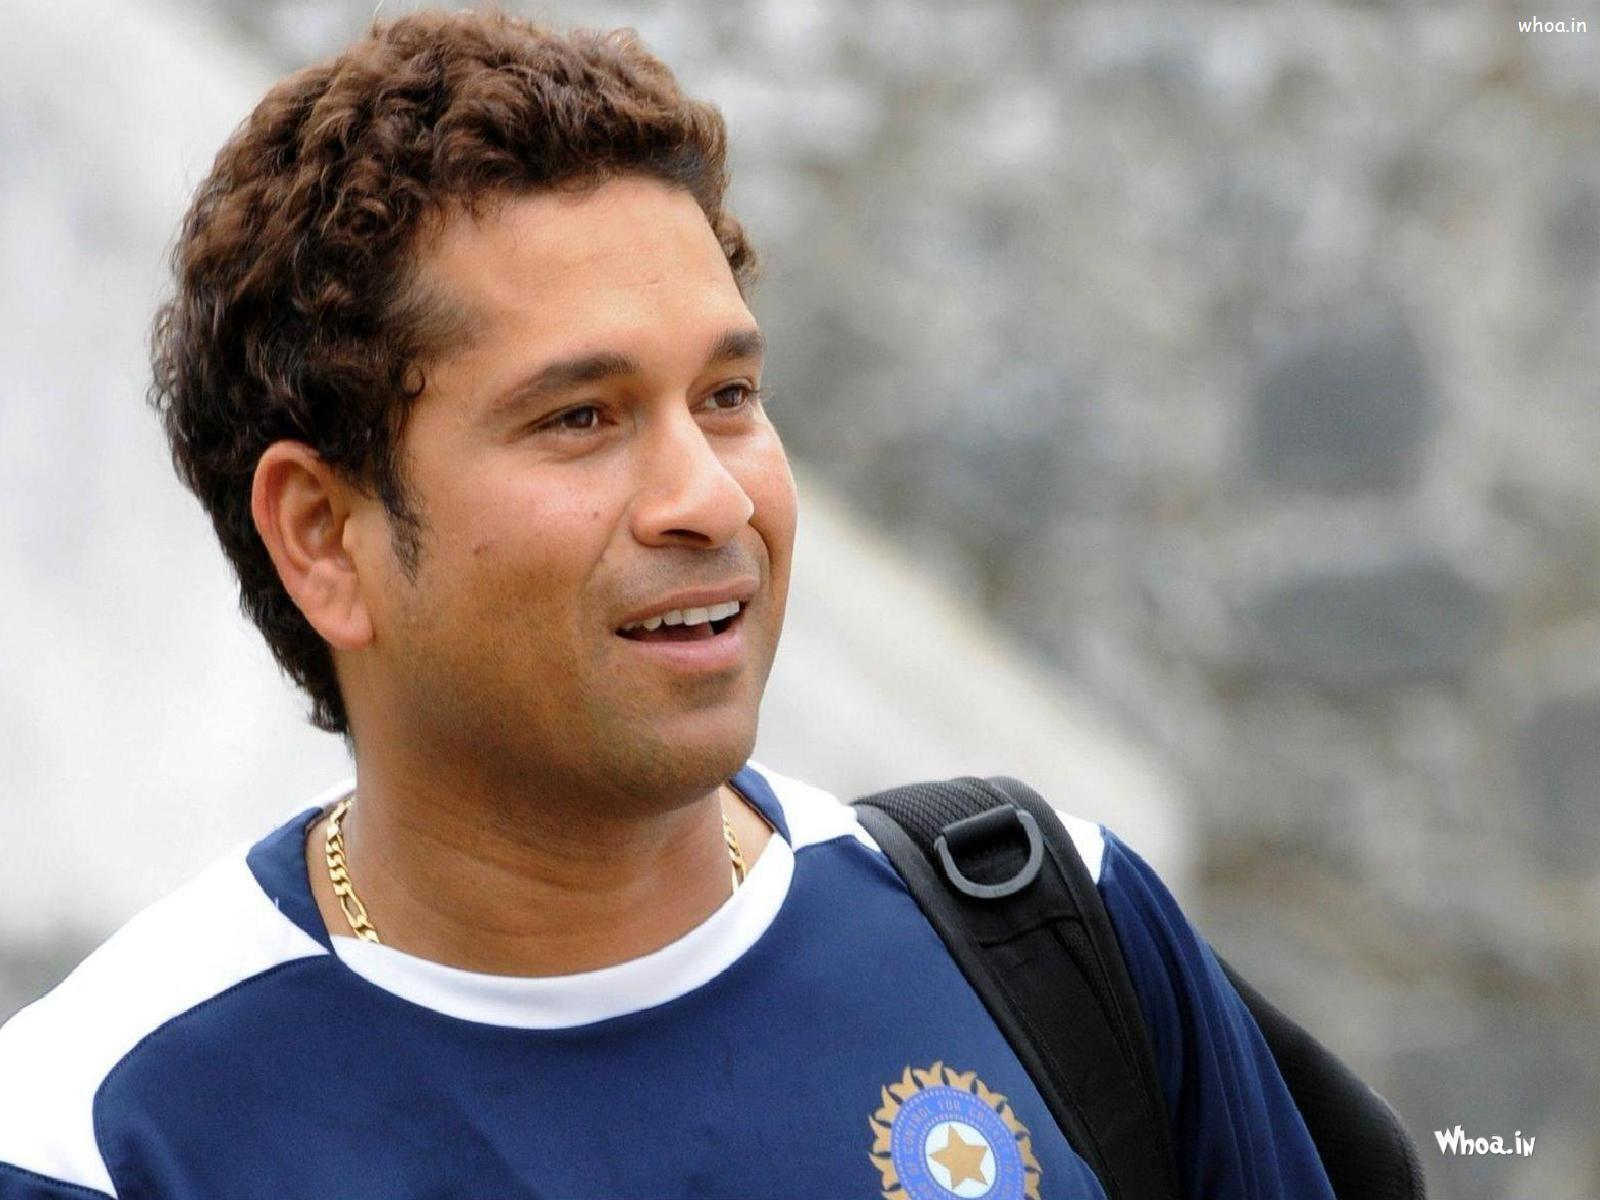 sachin tendulkar hd wallpapers 1080p